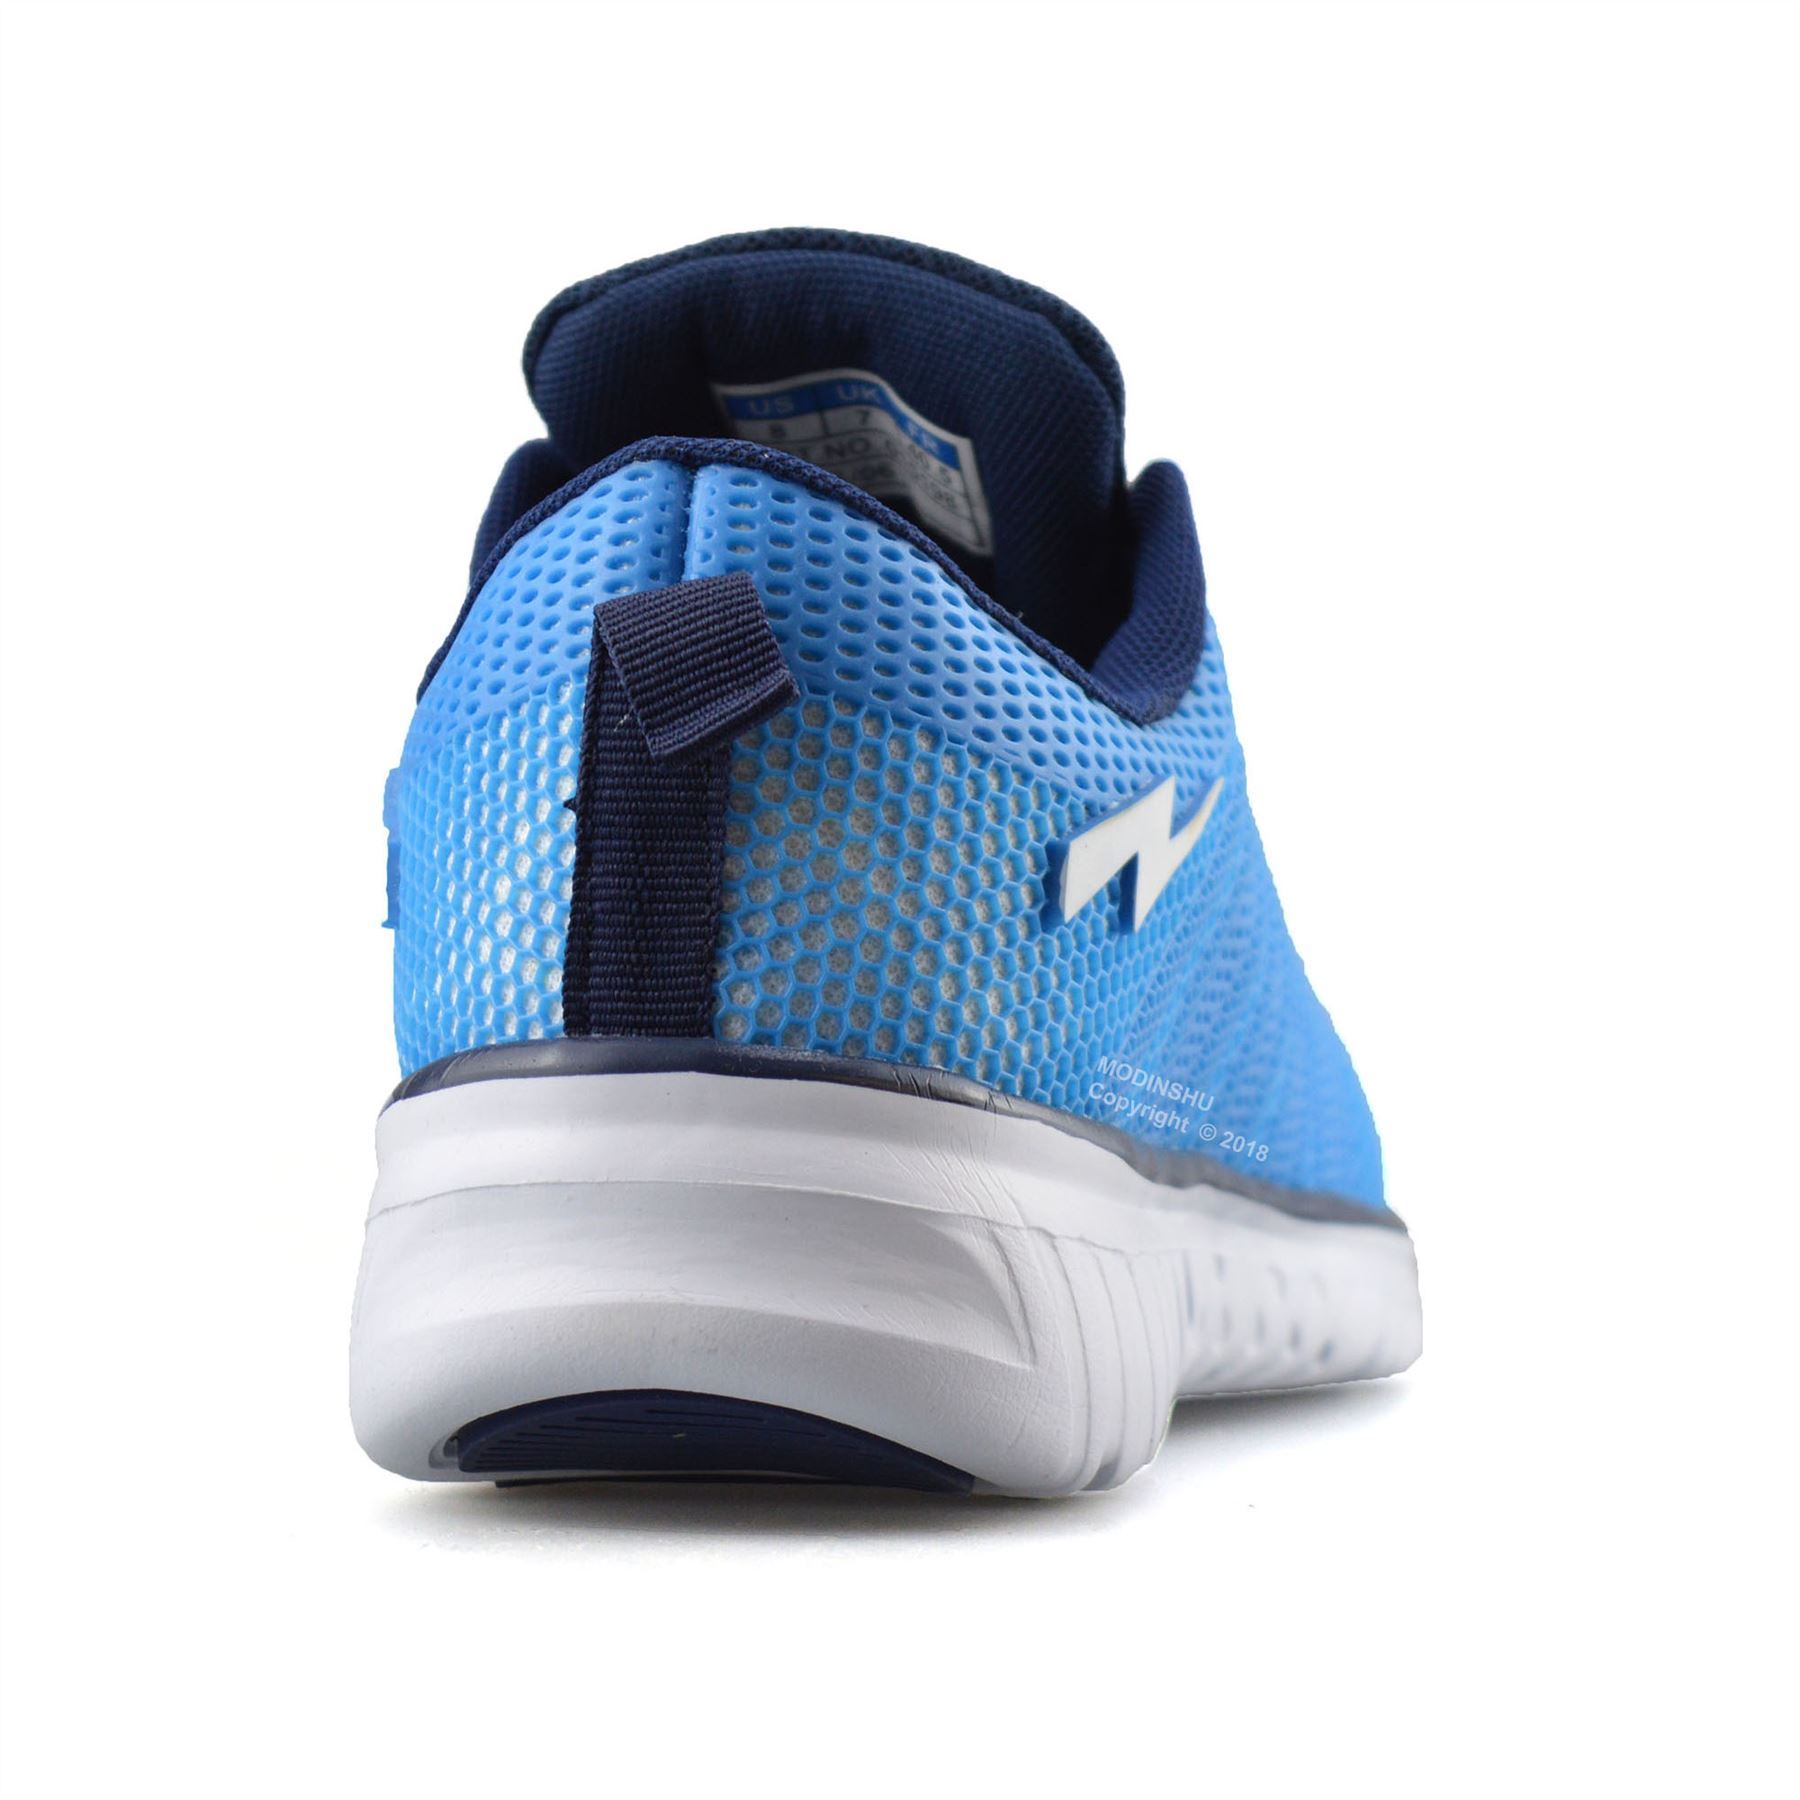 Mens-Casual-Running-Walking-Sports-Gym-Shock-Absorbing-Lace-Trainers-Shoes-Size thumbnail 16